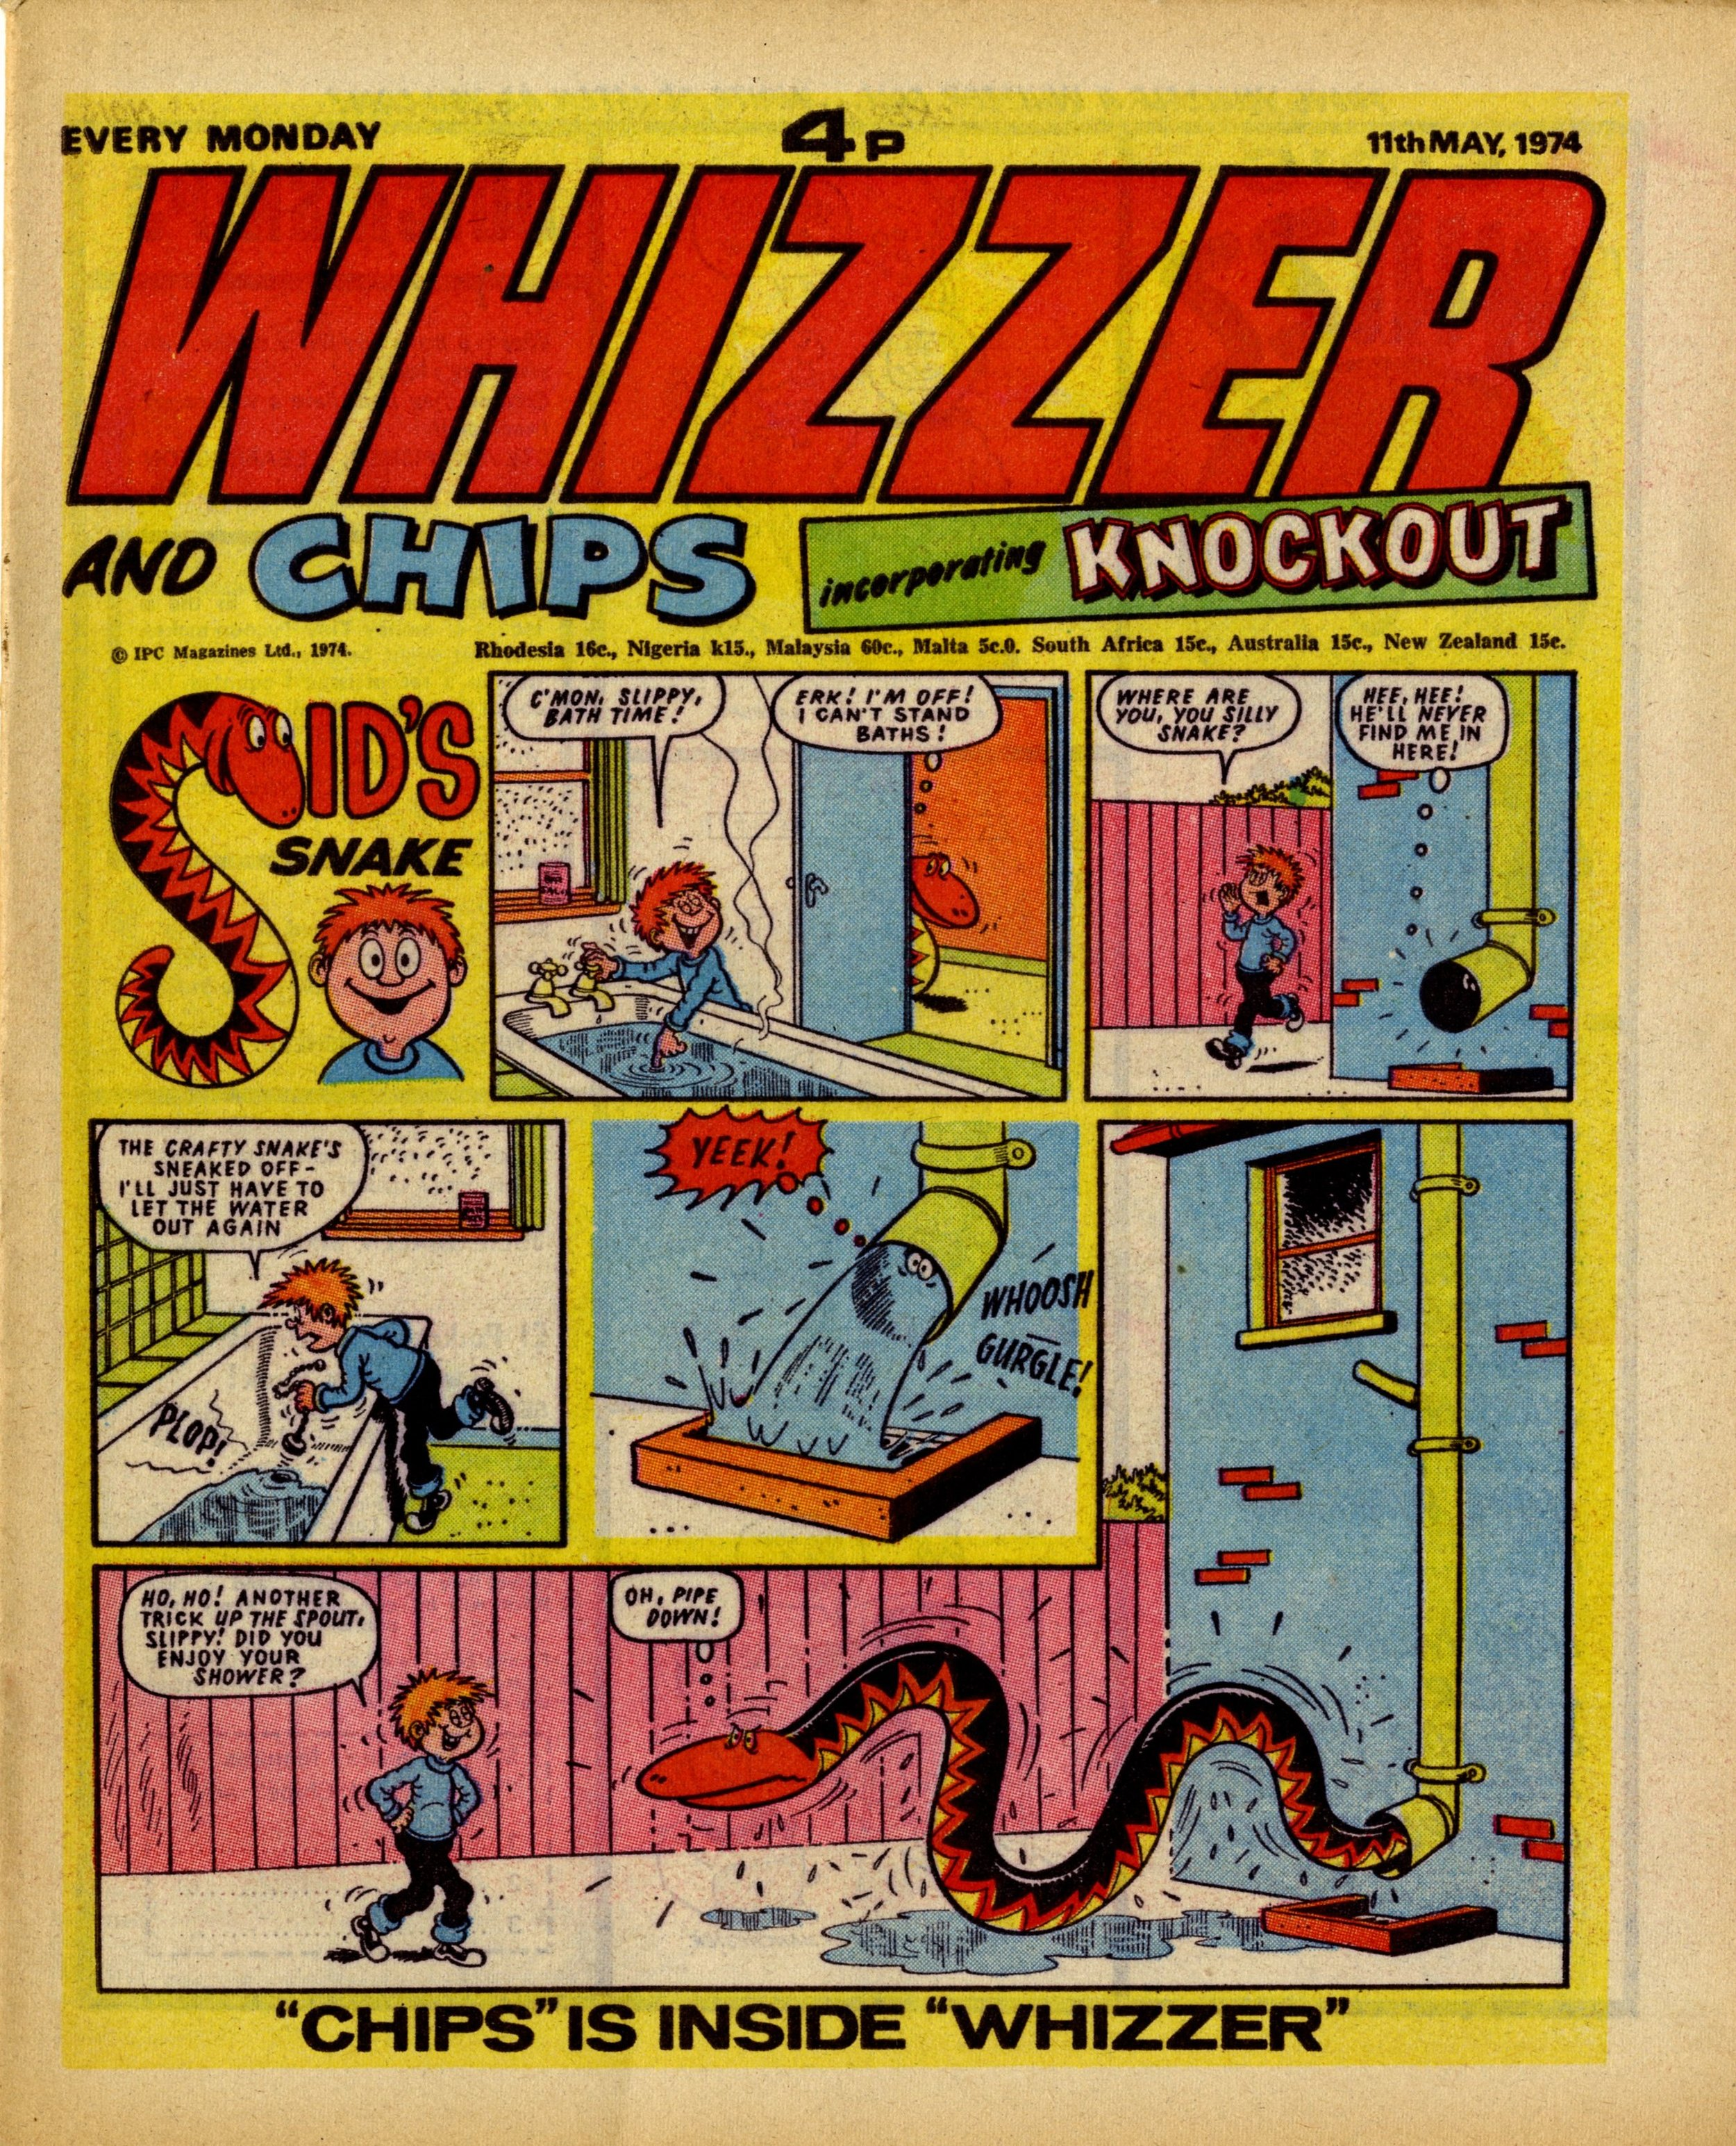 On this day, 11 May 1974: Whizzer and Chips incorporating